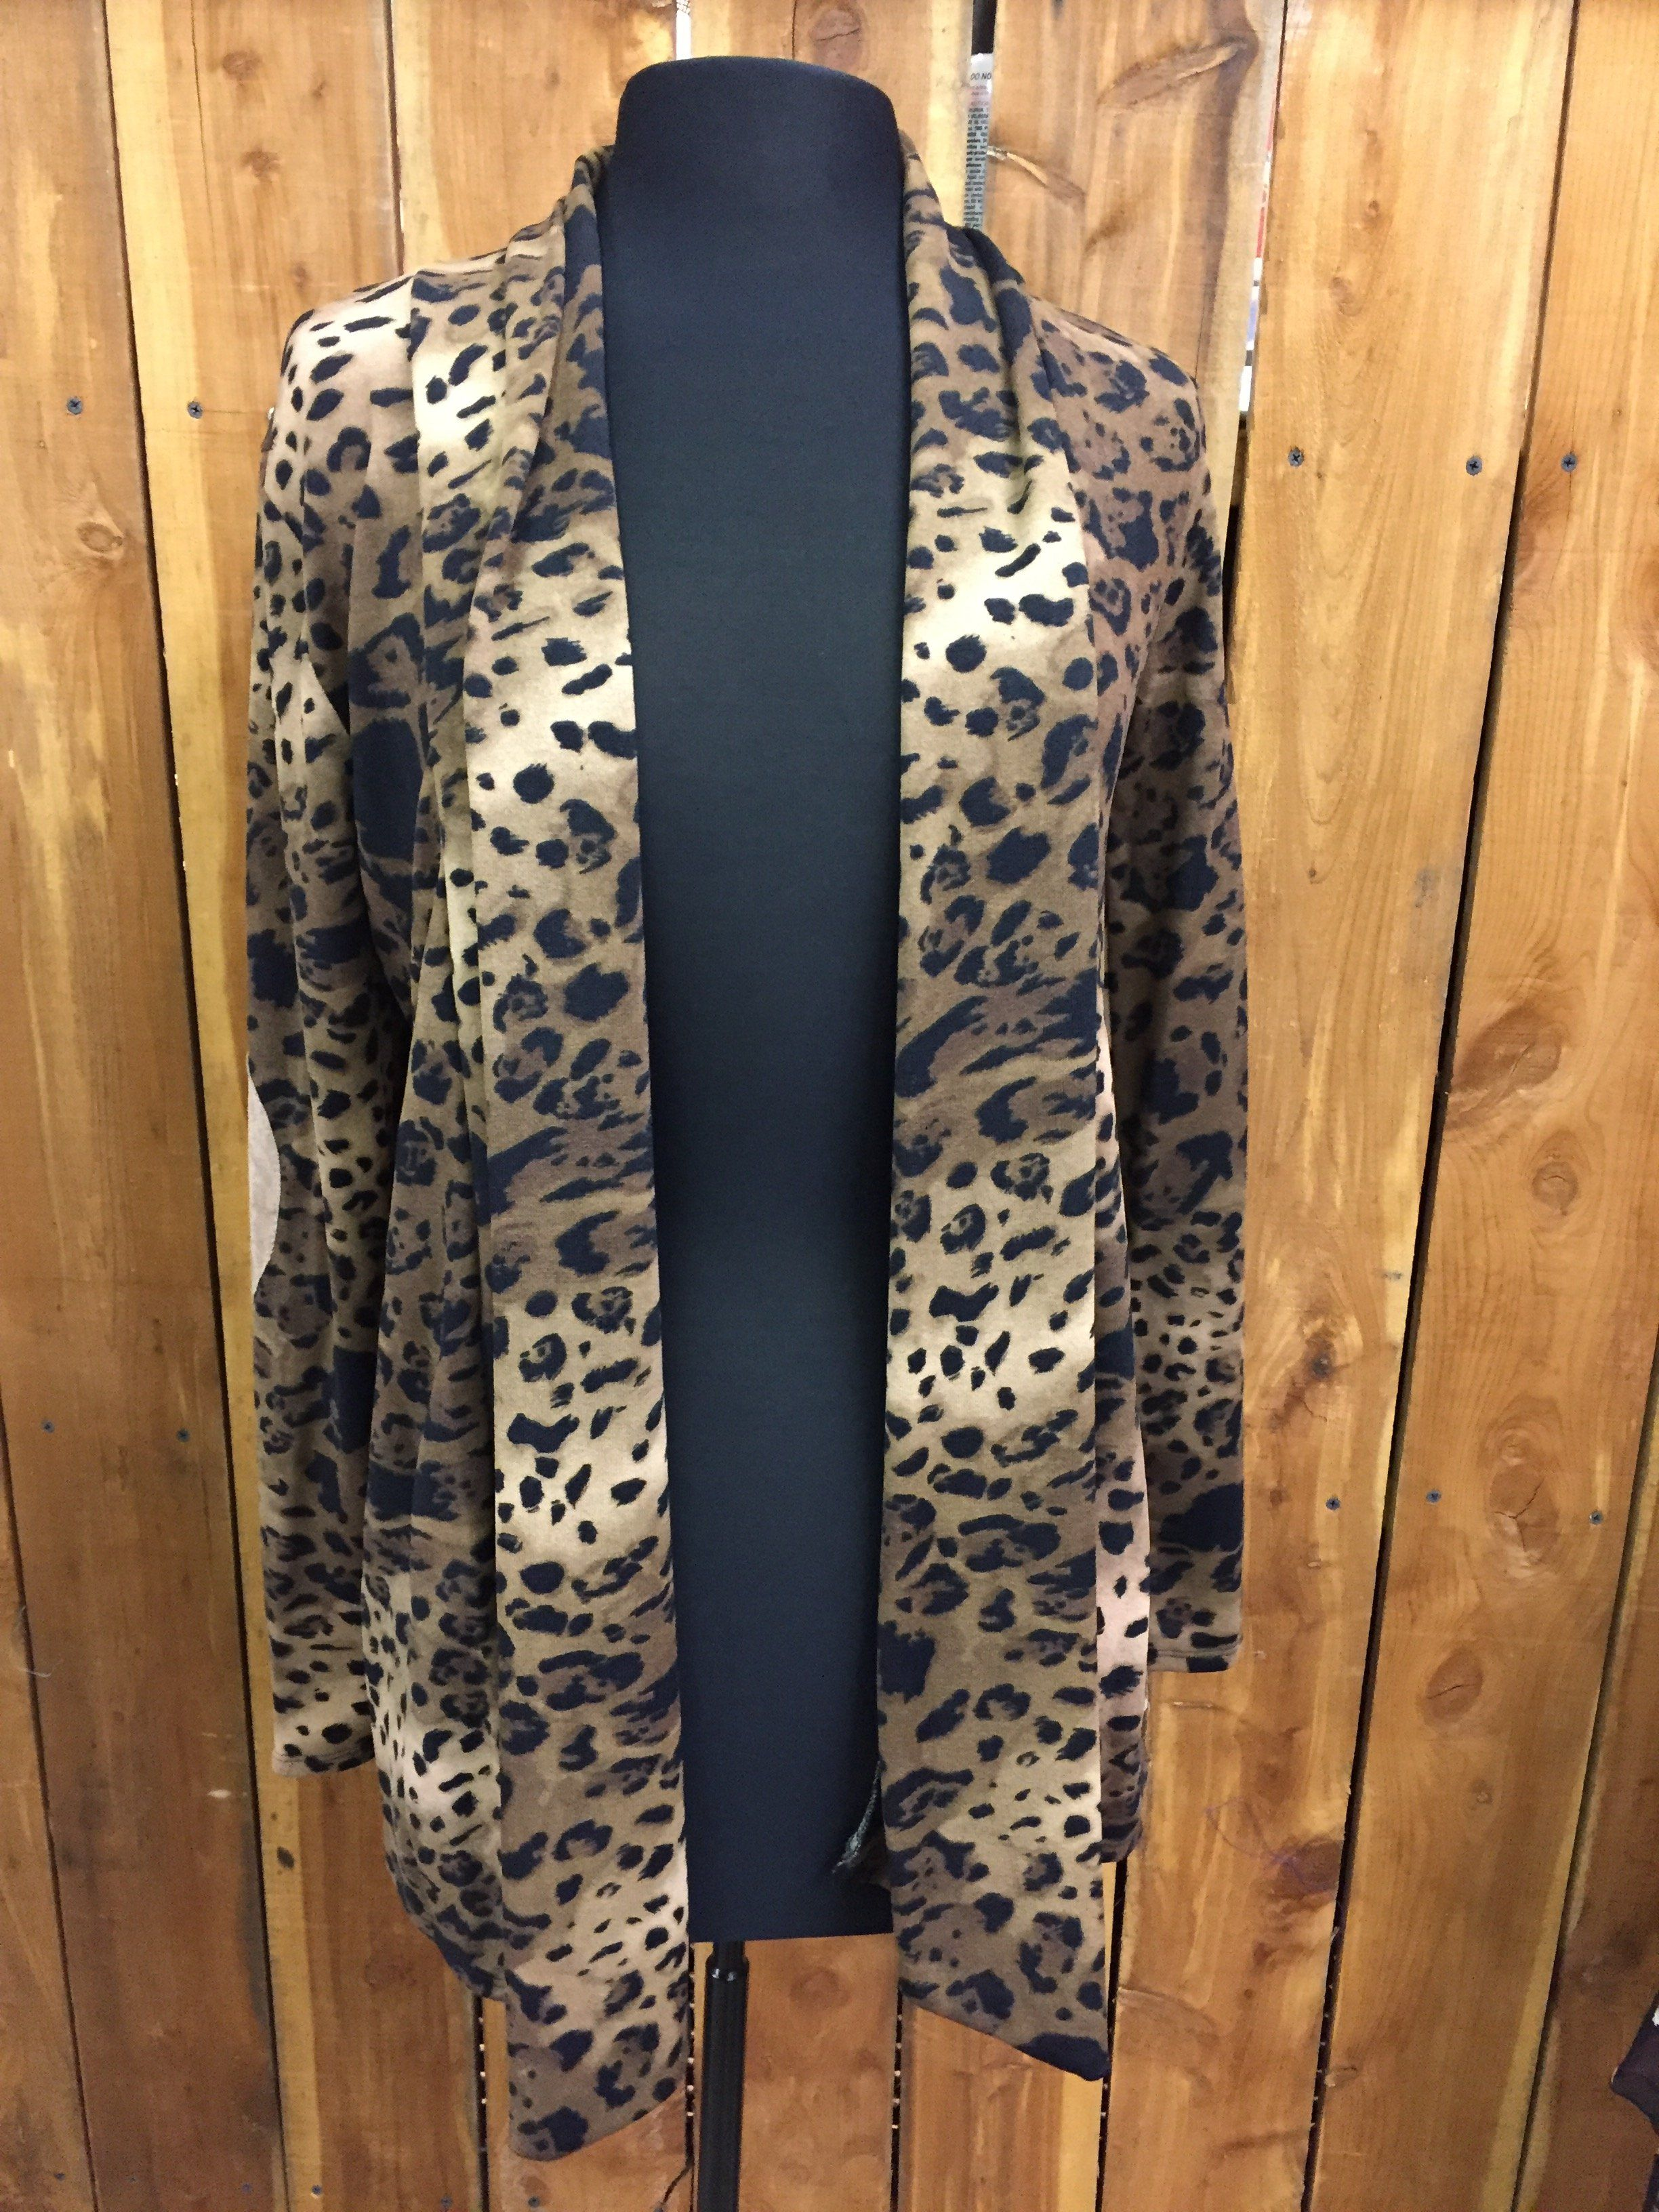 Leopard Cardigan with patch elbow - $38.00 | Products